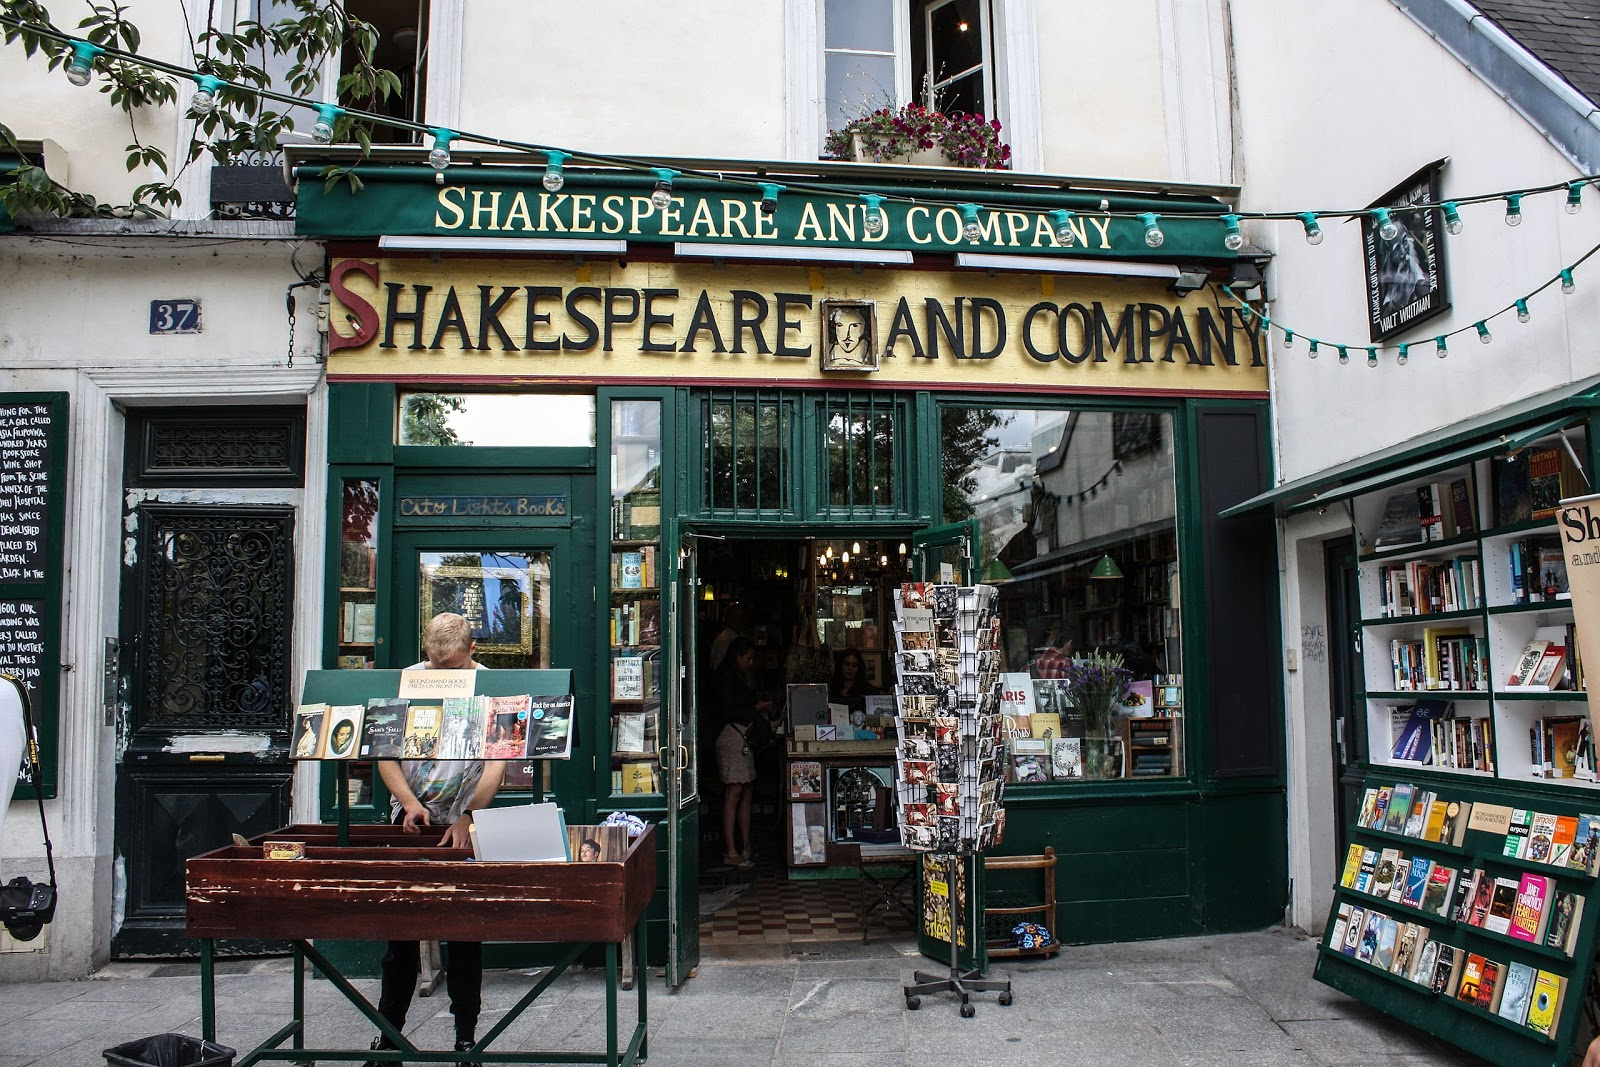 Shakespeare and Company bookstore Paris 13 August 2013